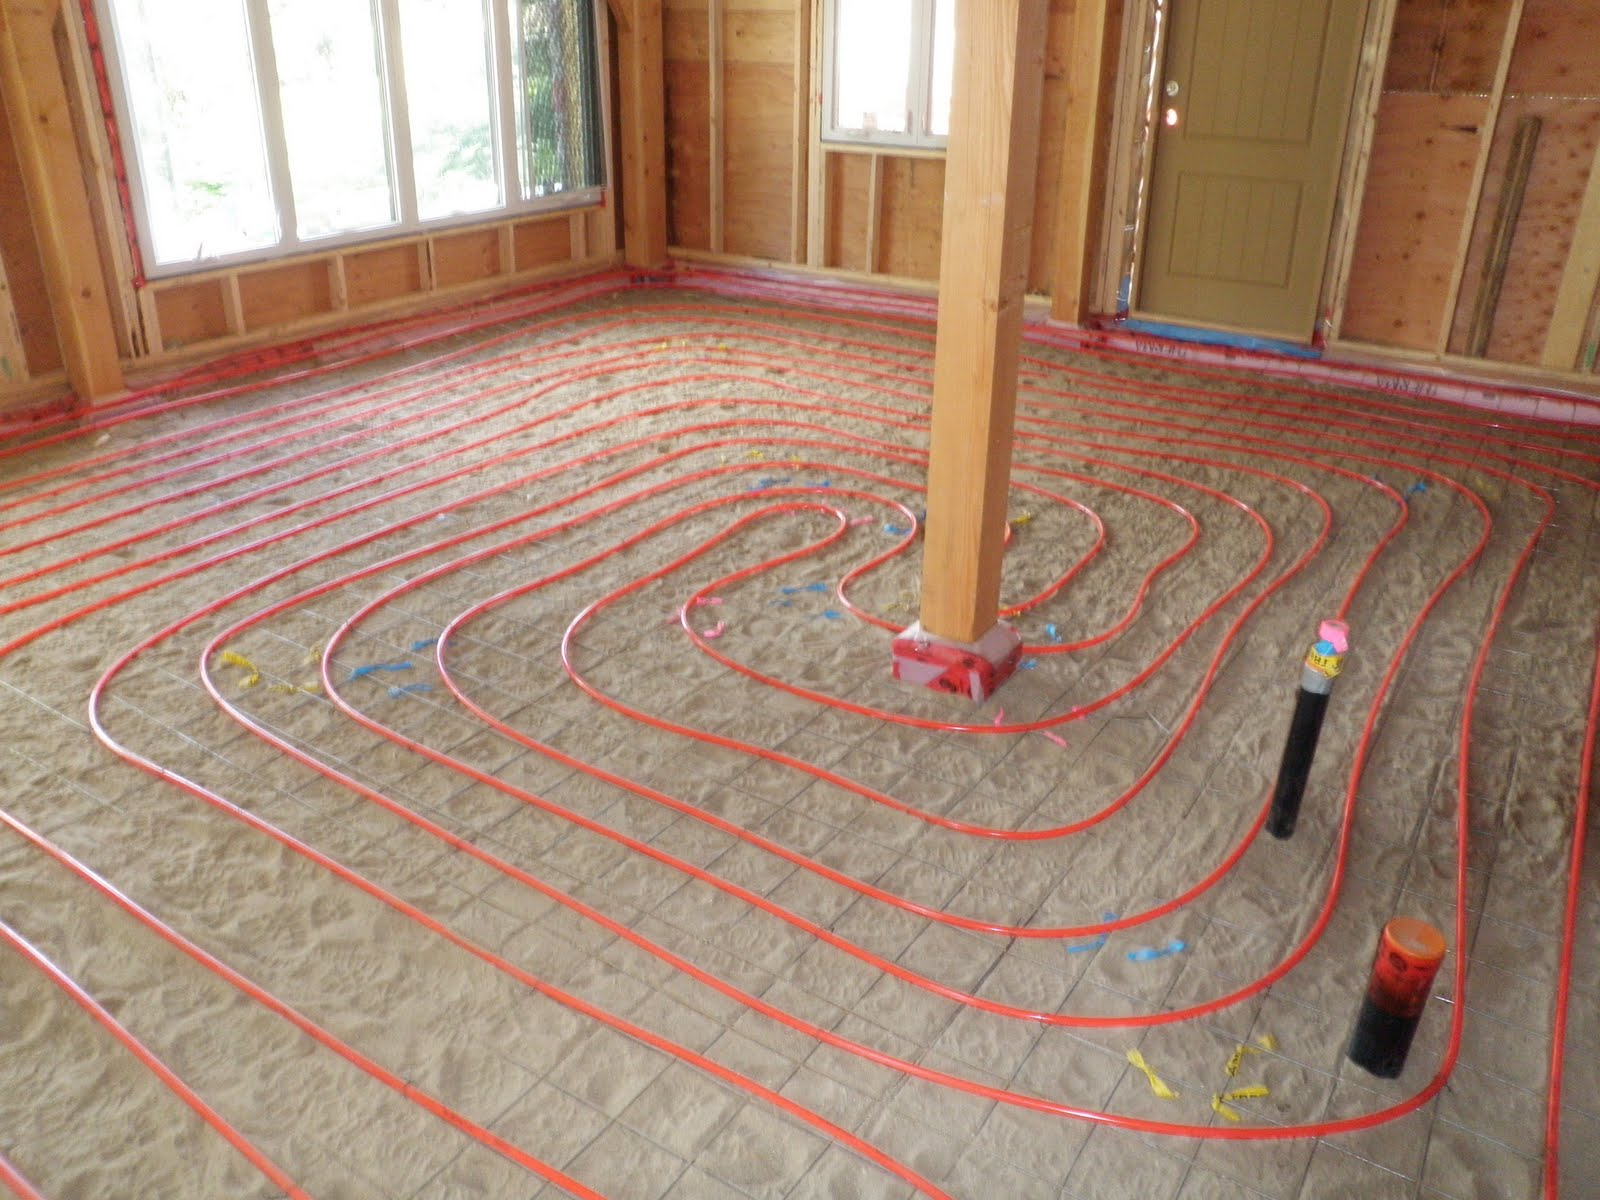 Kootenay House: Radiant Floor Heating